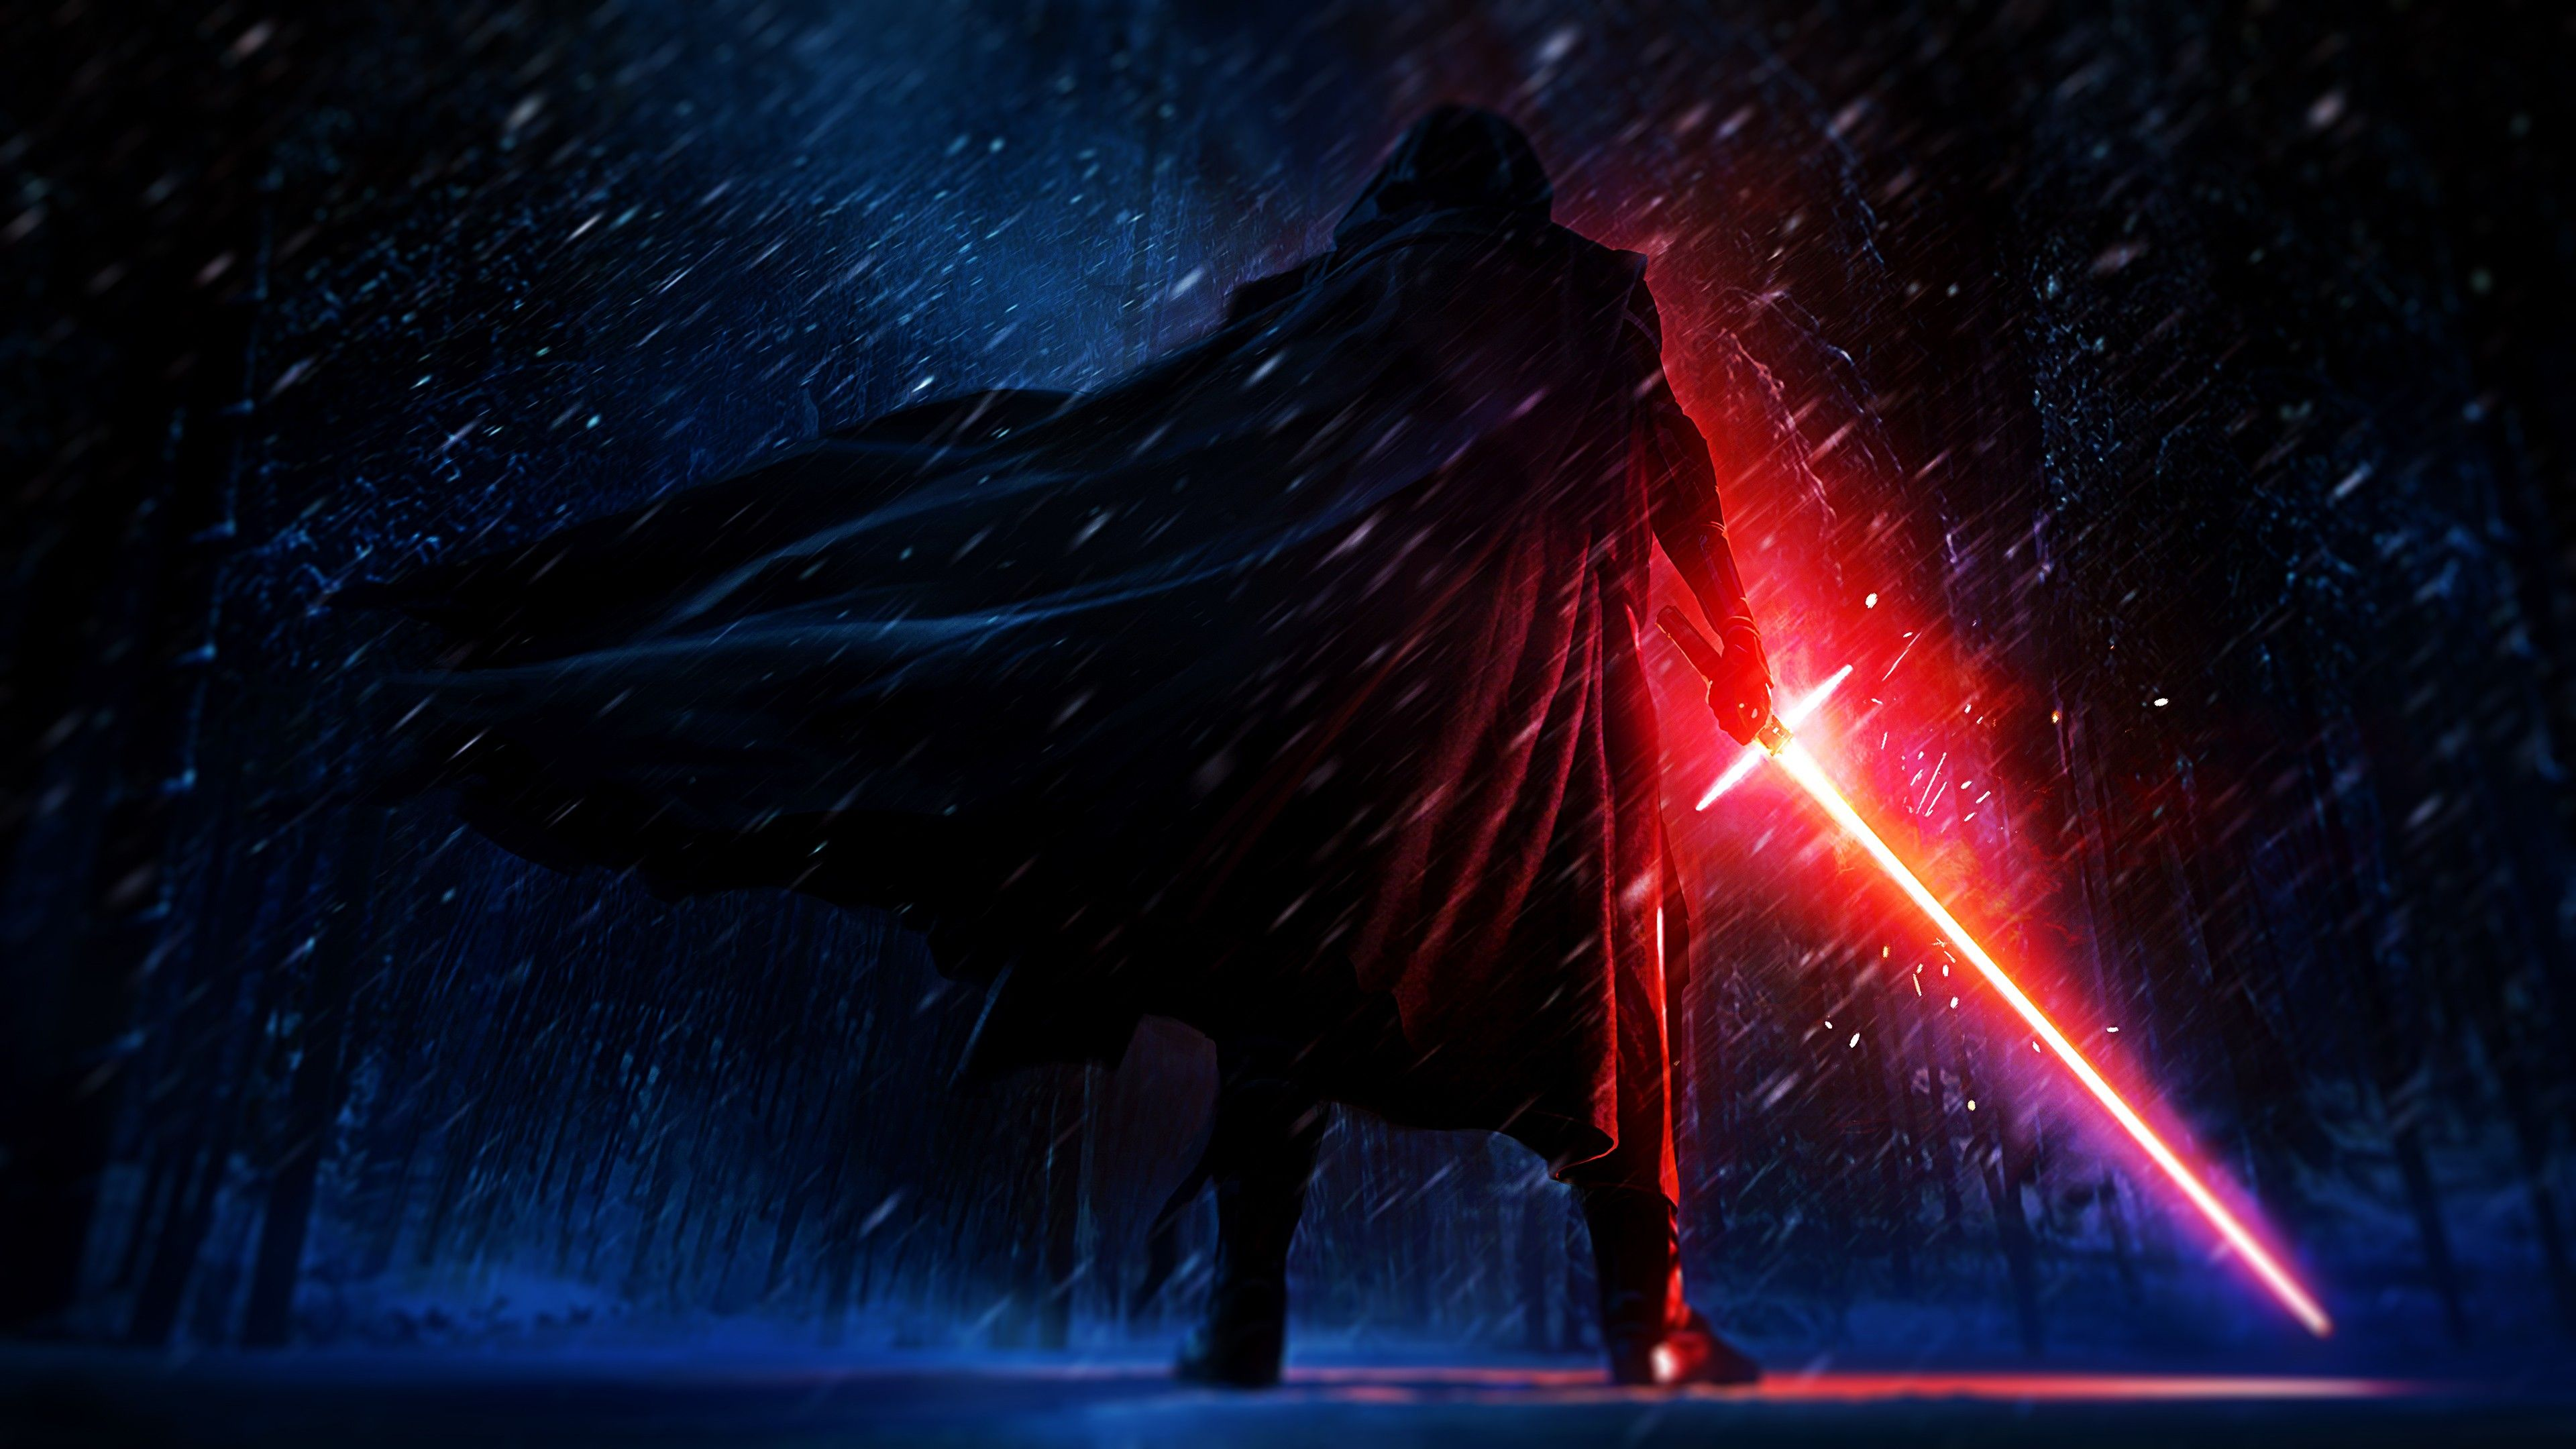 4K Star Wars Sith Wallpapers - Top Free 4K Star Wars Sith ...